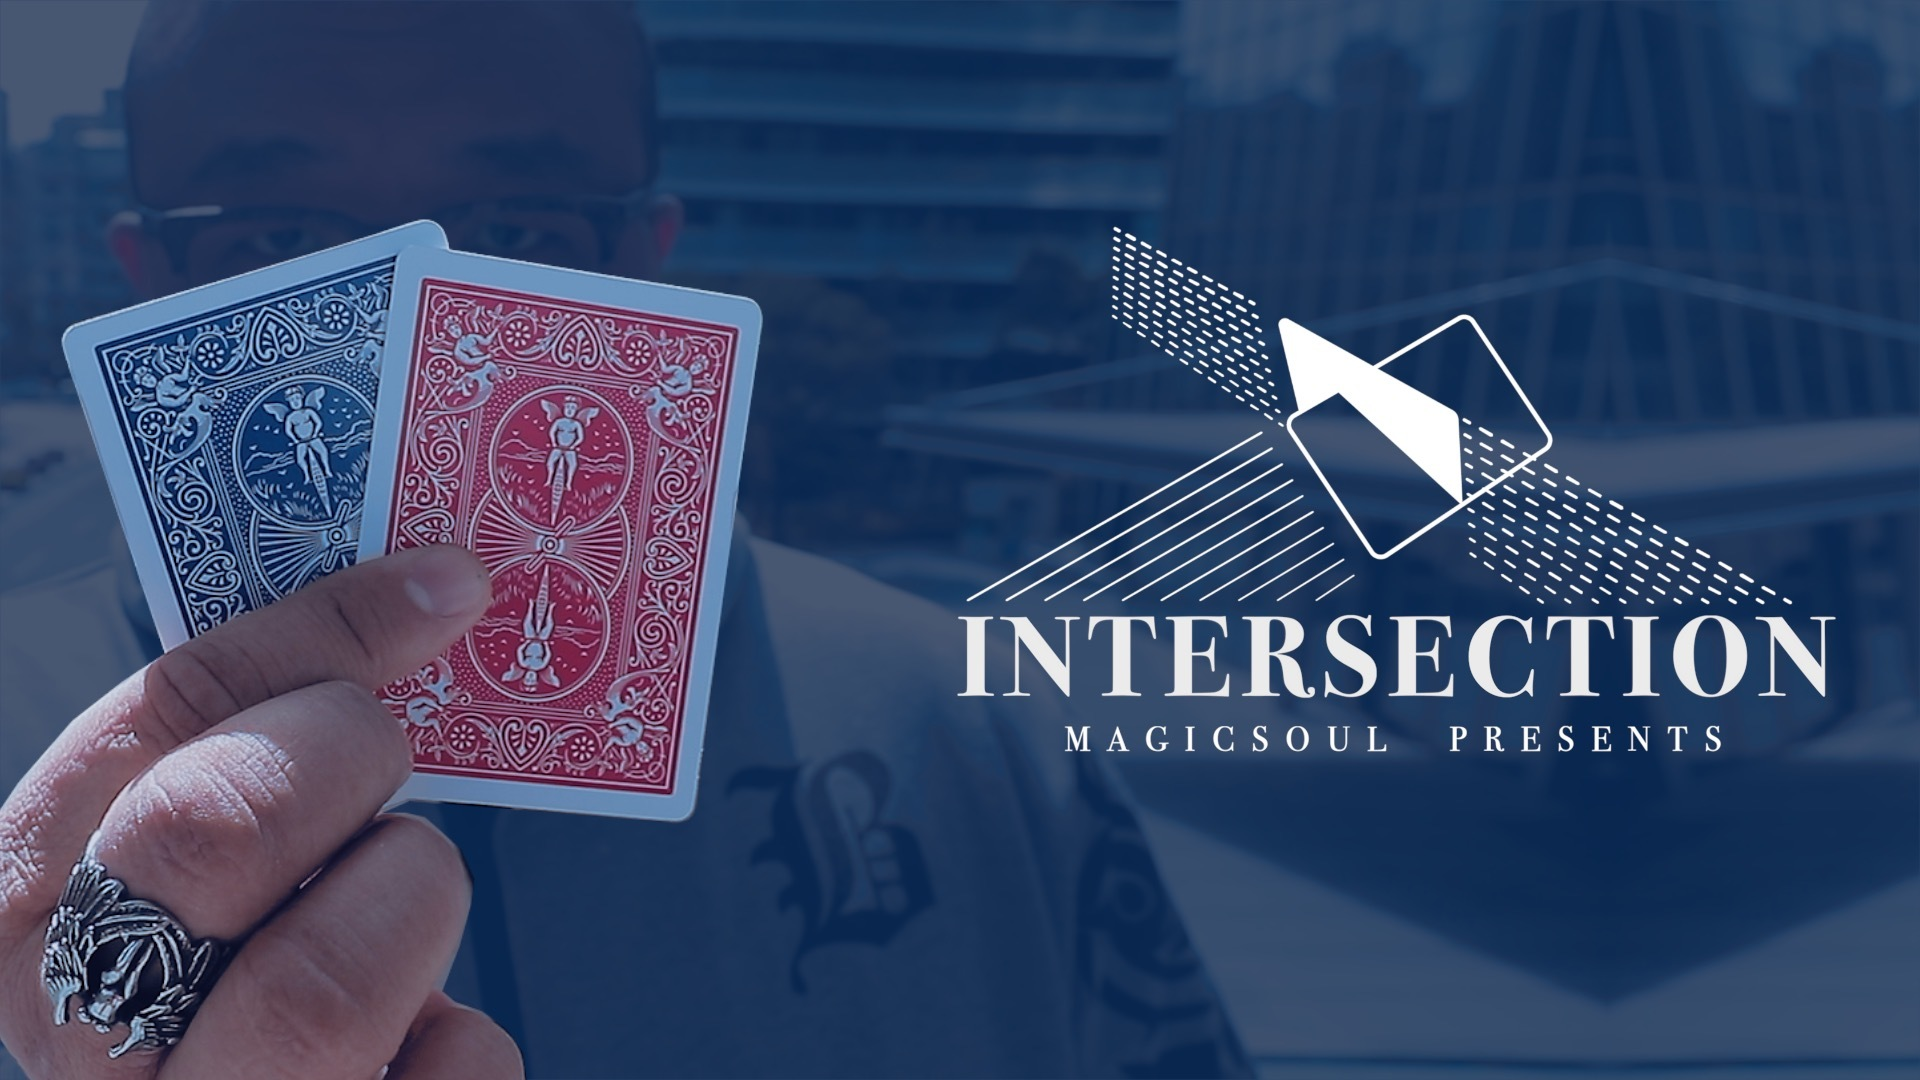 Card Magic Intersection by Hondo-1.jpg